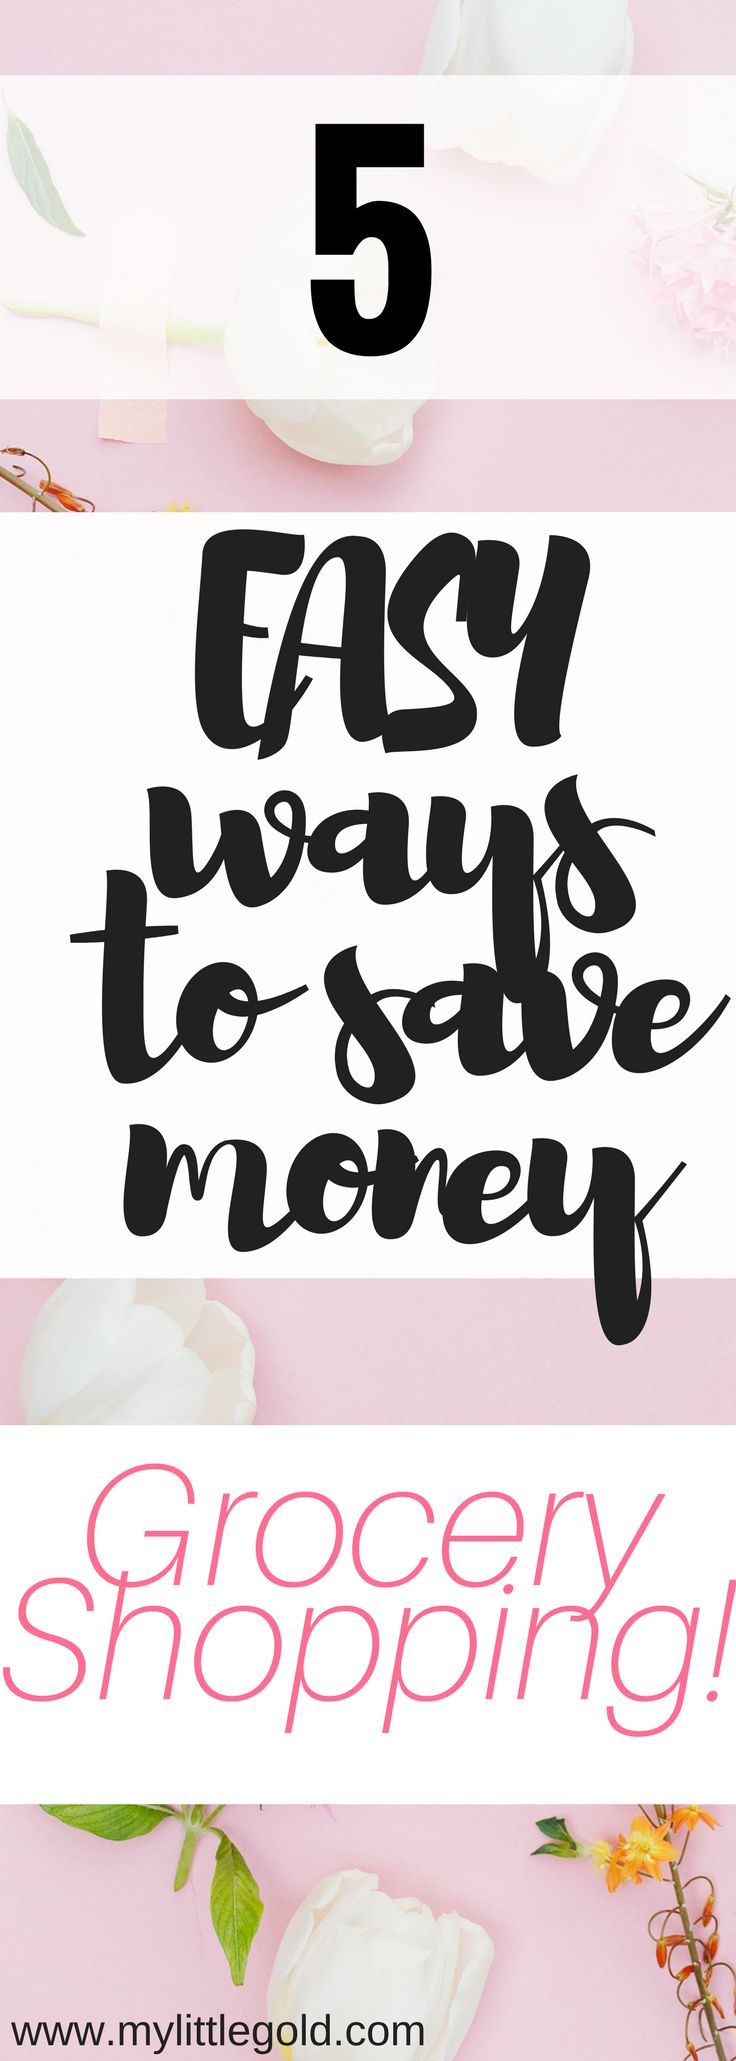 saving money grocery shopping can be difficulty but with a little planning before you hit the aisles, you can save yourself so much more than a few dollars!